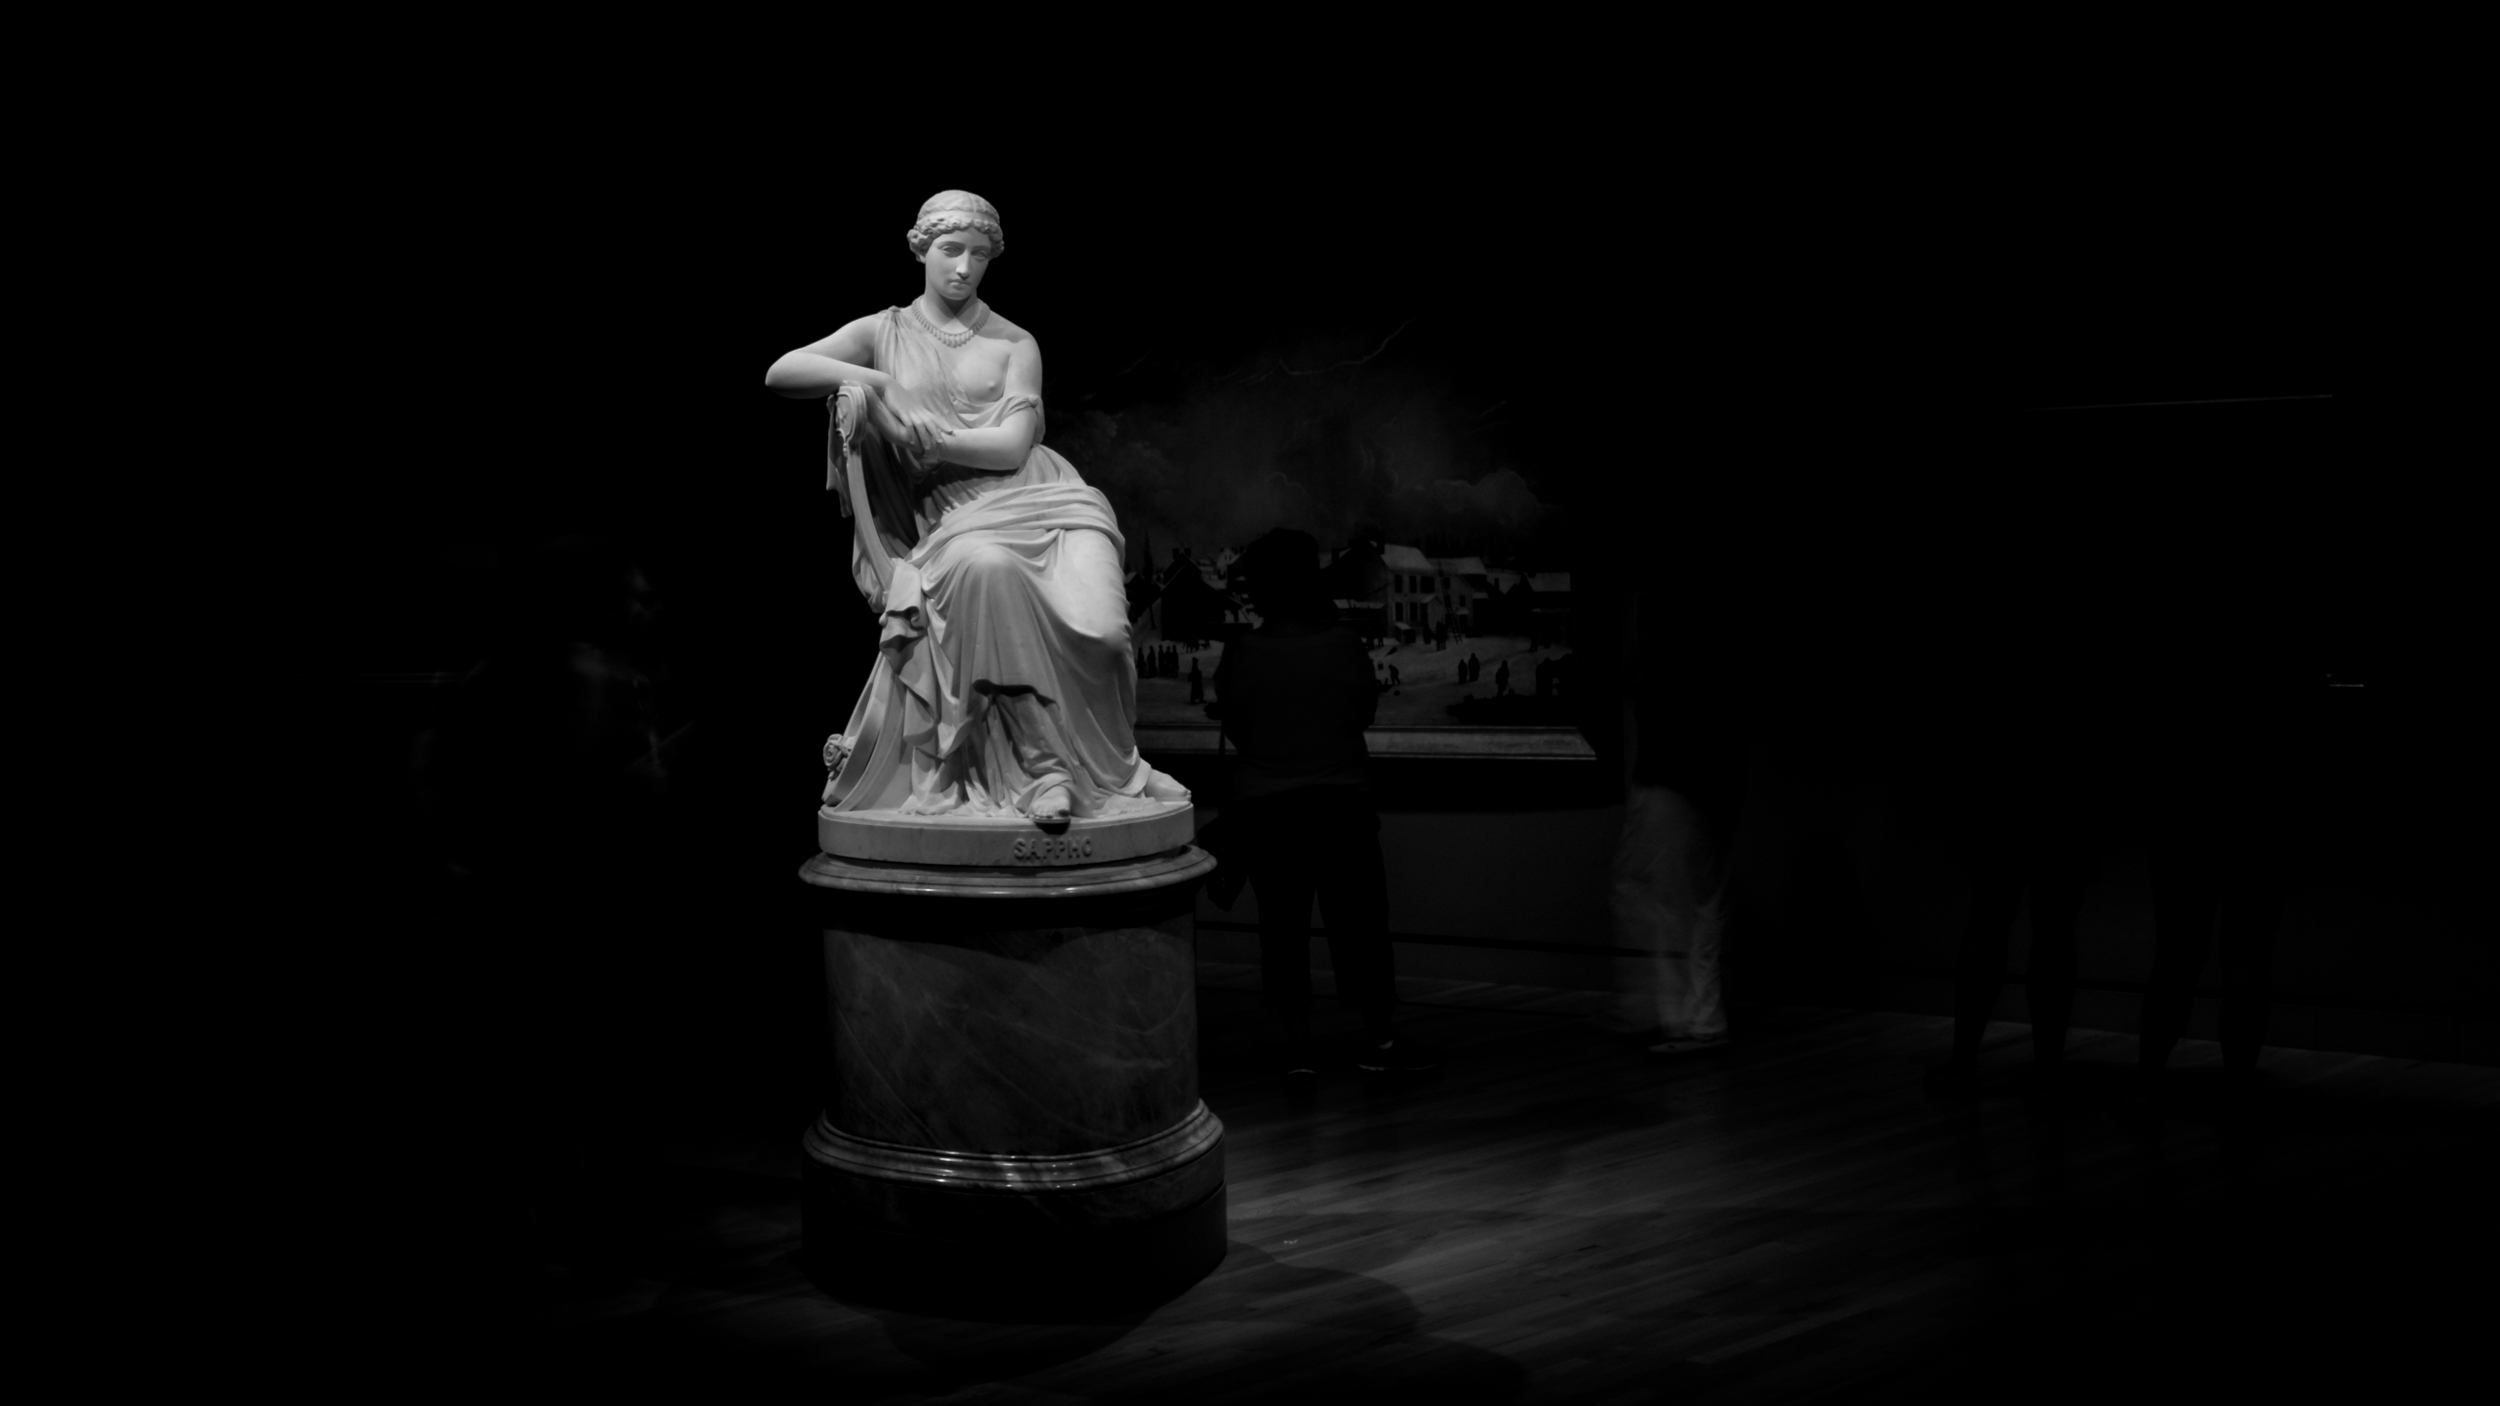 Black and White Photograph of the sculpture Sappho by William Wetmore Story (1819 - 1895). Crystal Bridges Museum of American Art.